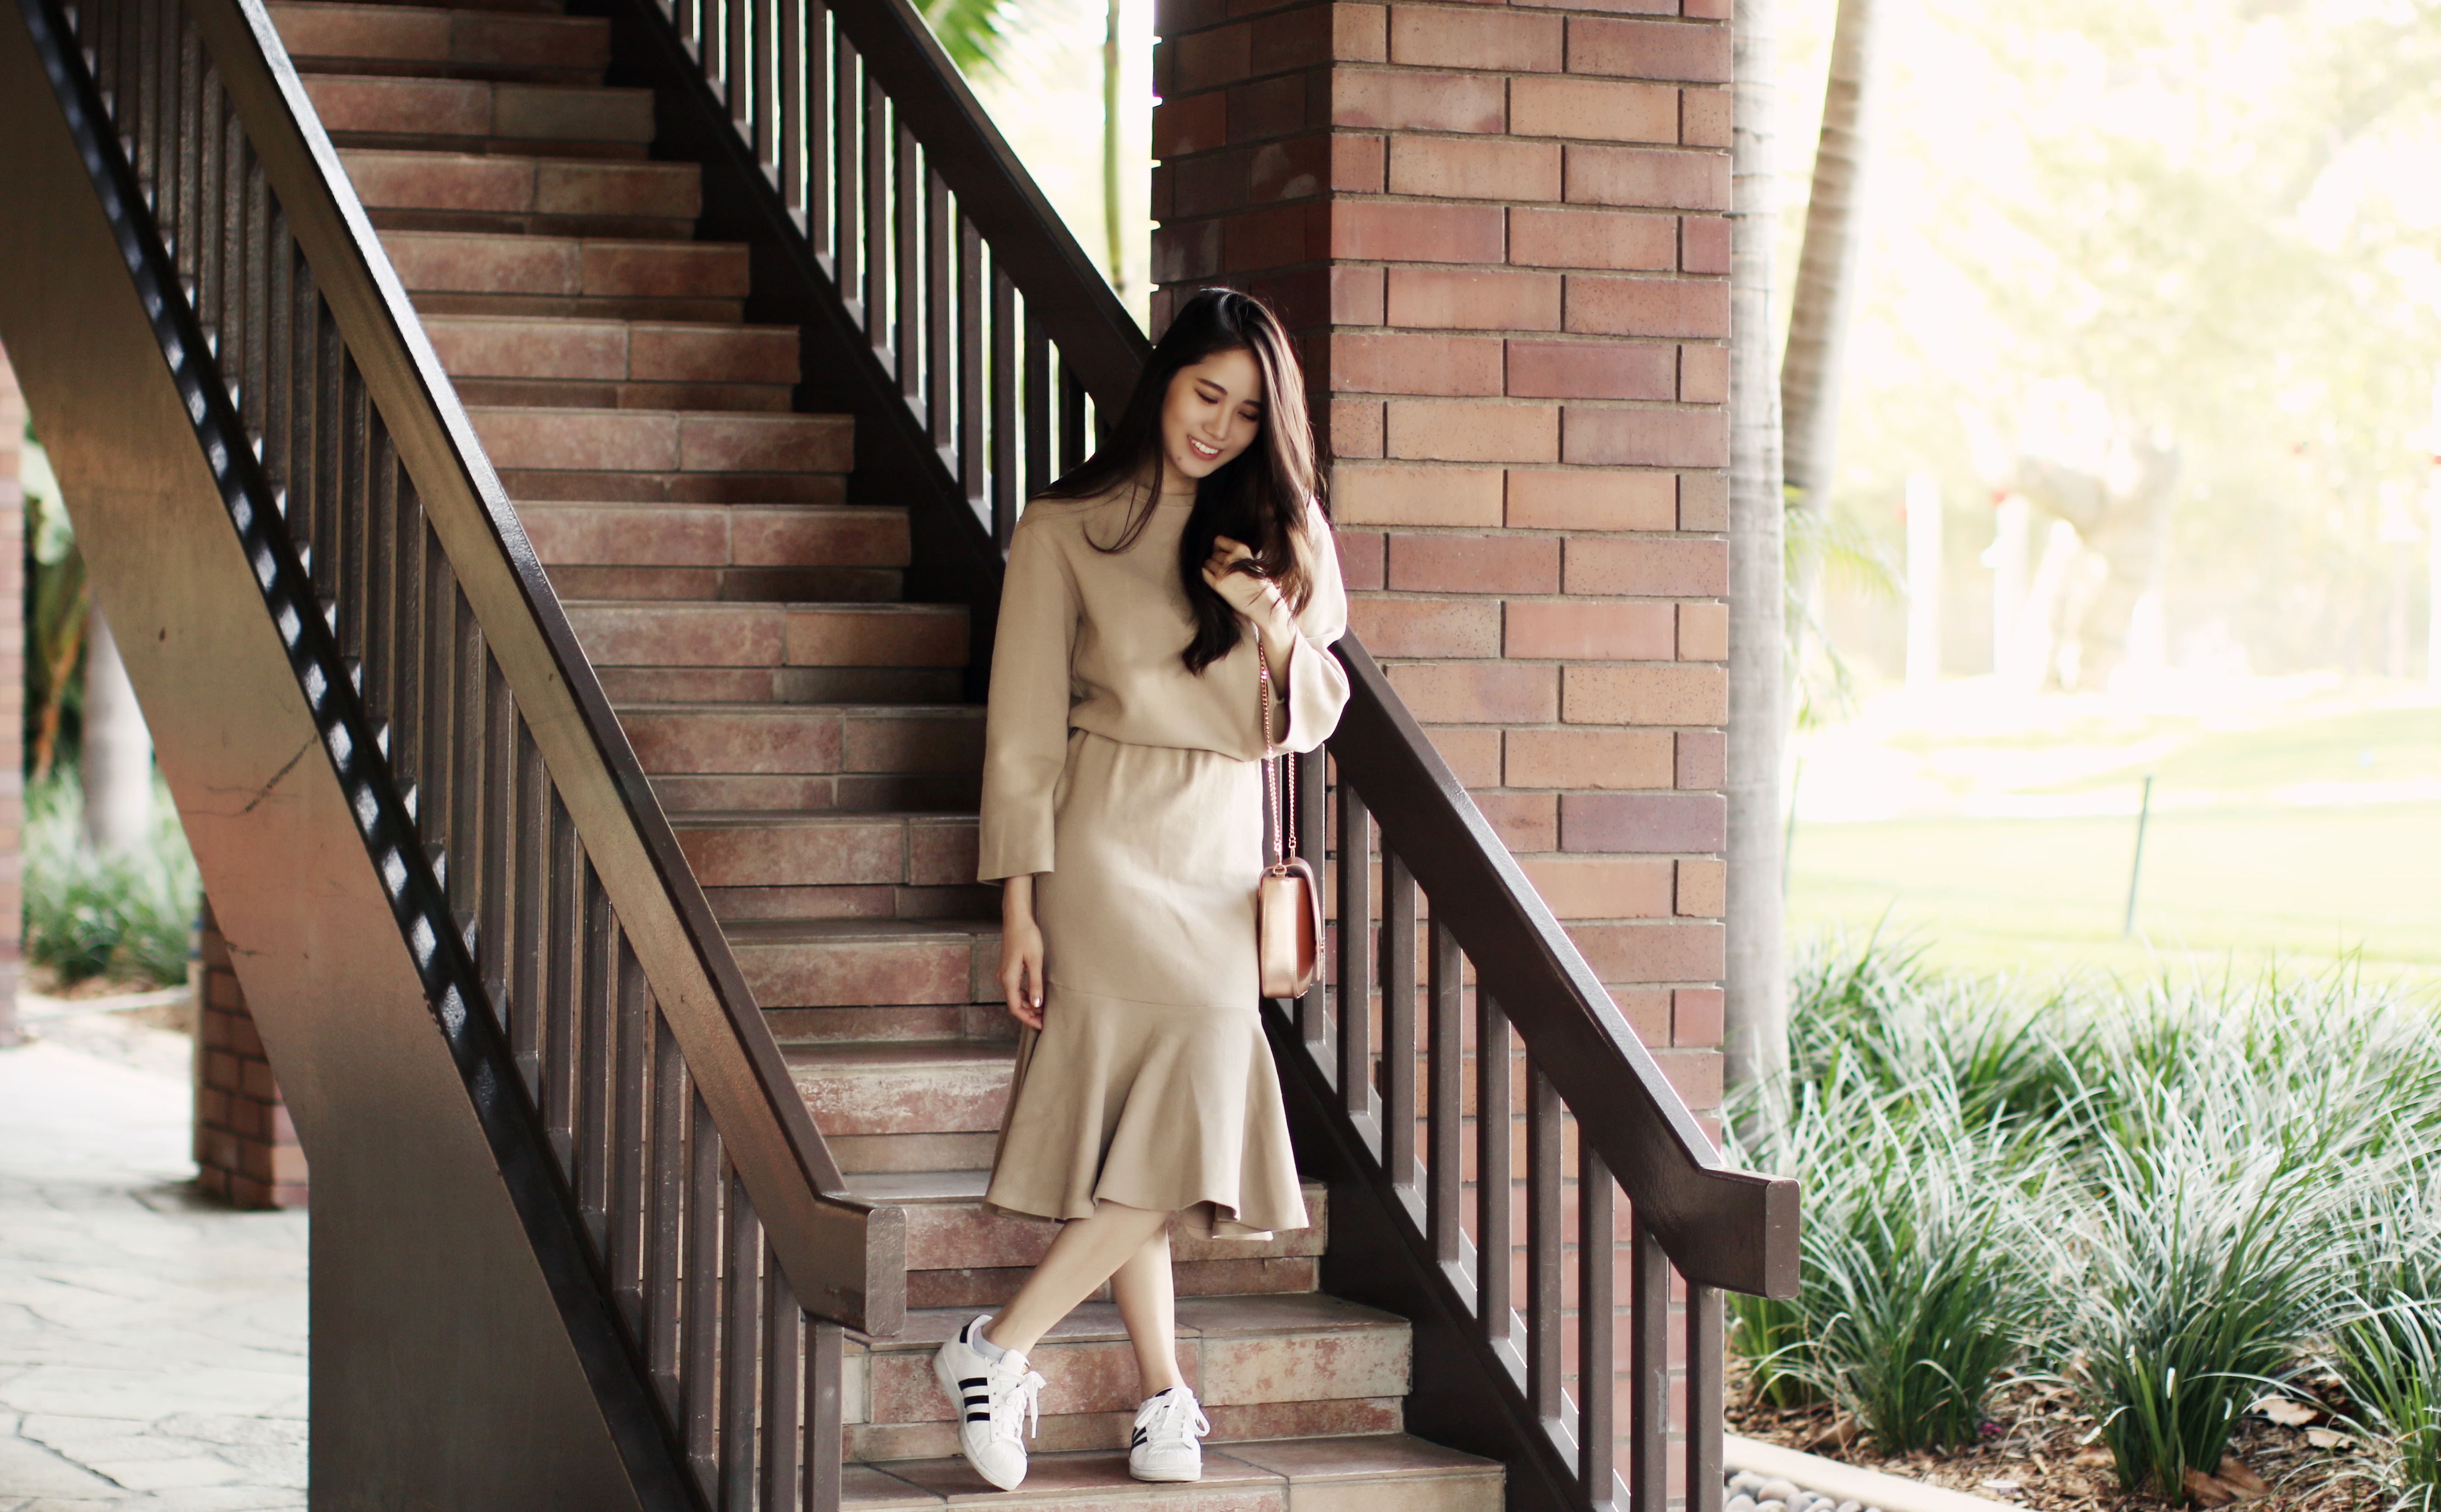 4592-ootd-fashion-style-outfitoftheday-wiwt-streetstyle-SSUMJ-SSUMJxME-adidas-tedbaker-koreanfashion-elizabeeetht-clothestoyouuu